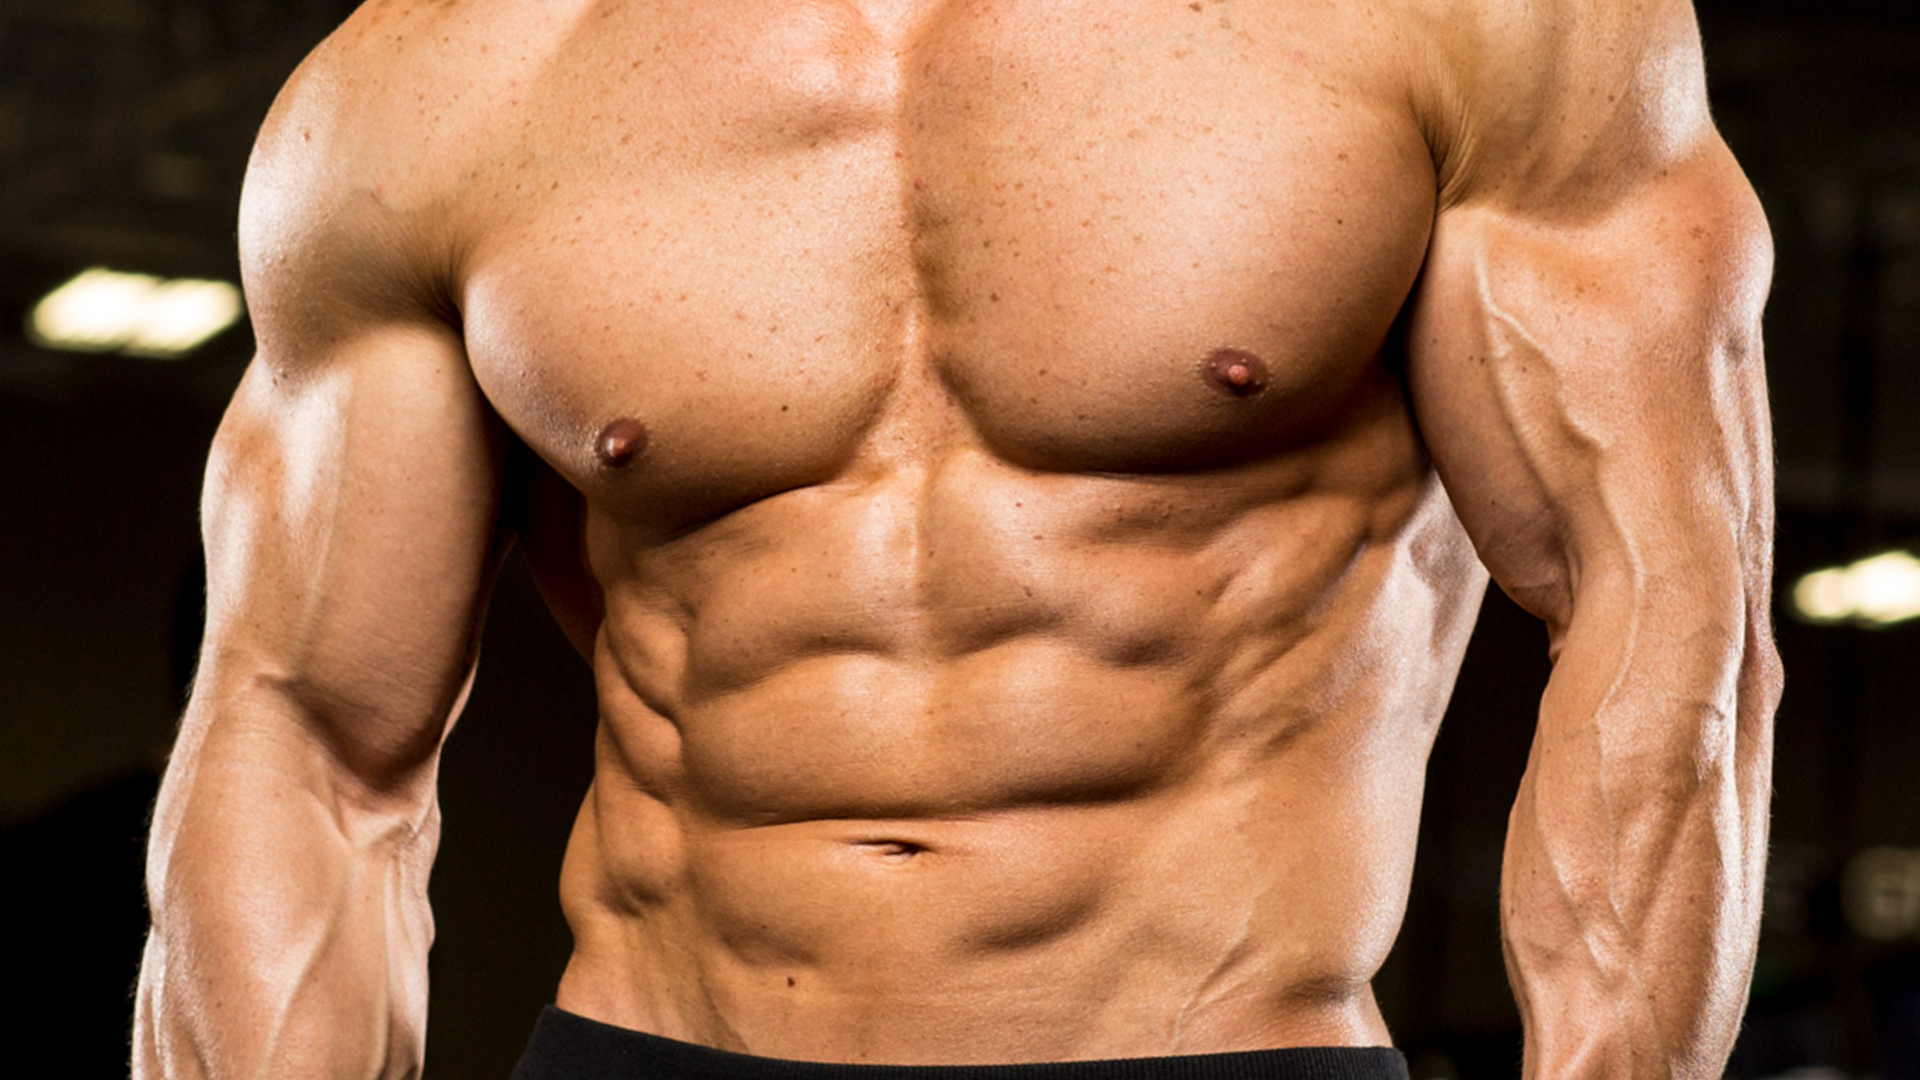 Testosterone Injections For Bodybuilding